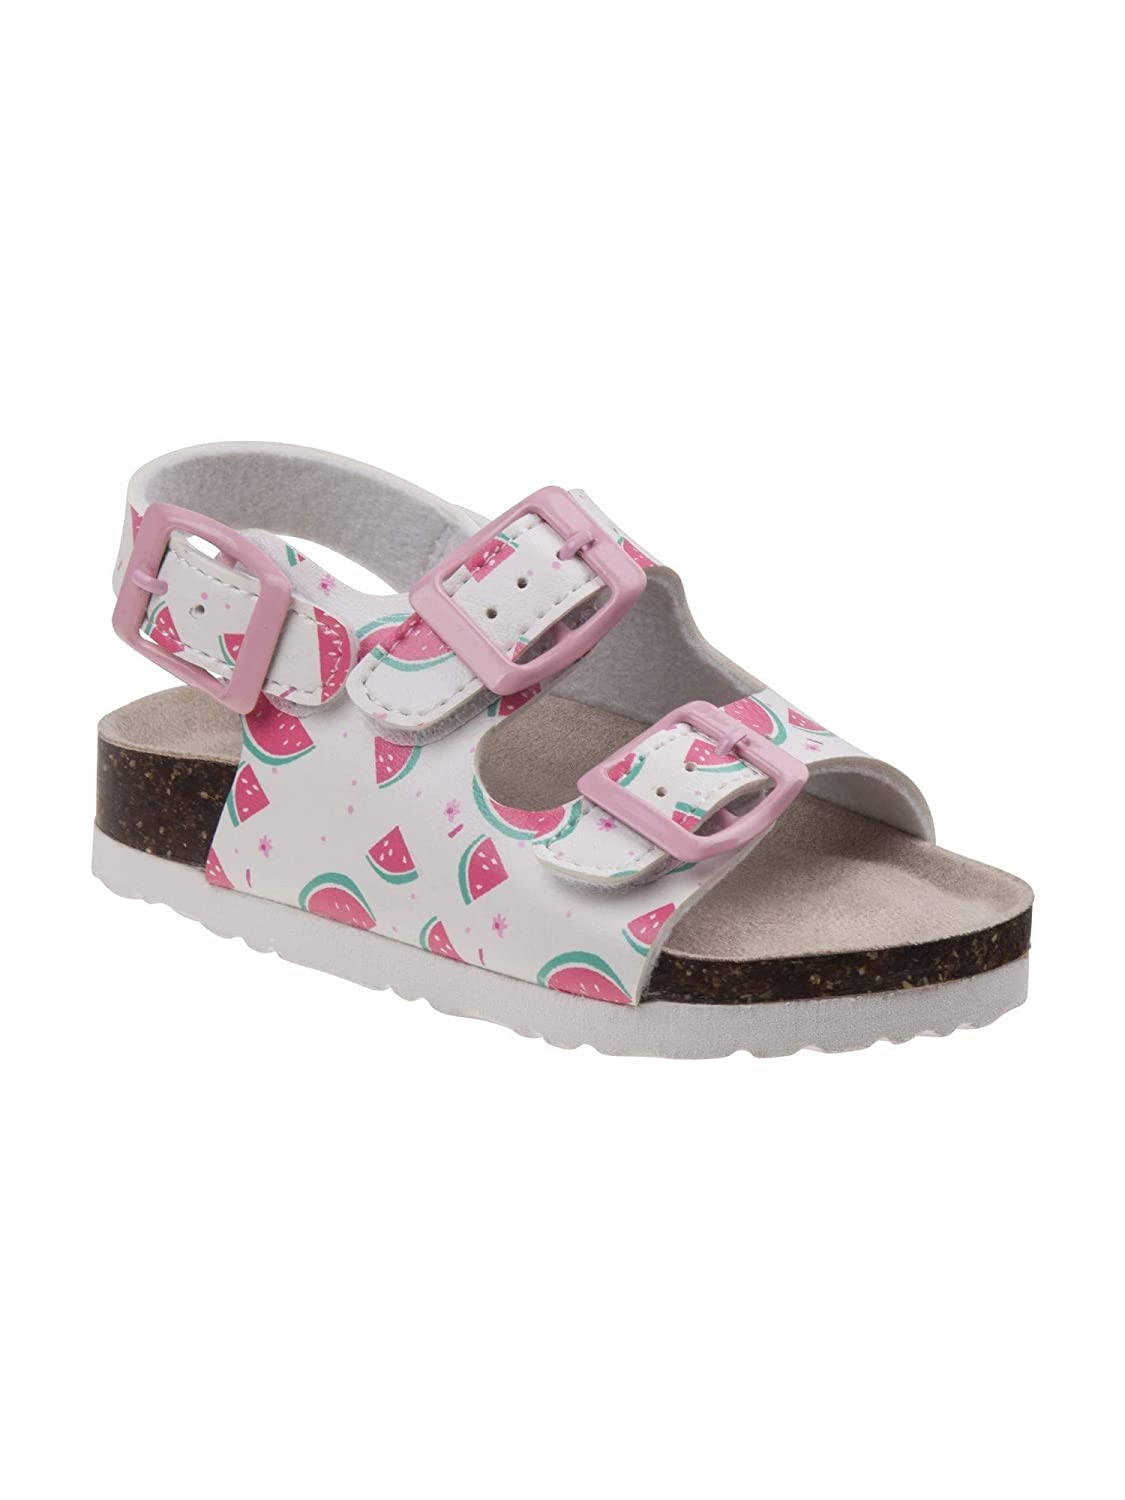 Laura Ashley Little Girls White Melon Print Cork Footbed Sandals 5-10 Toddler